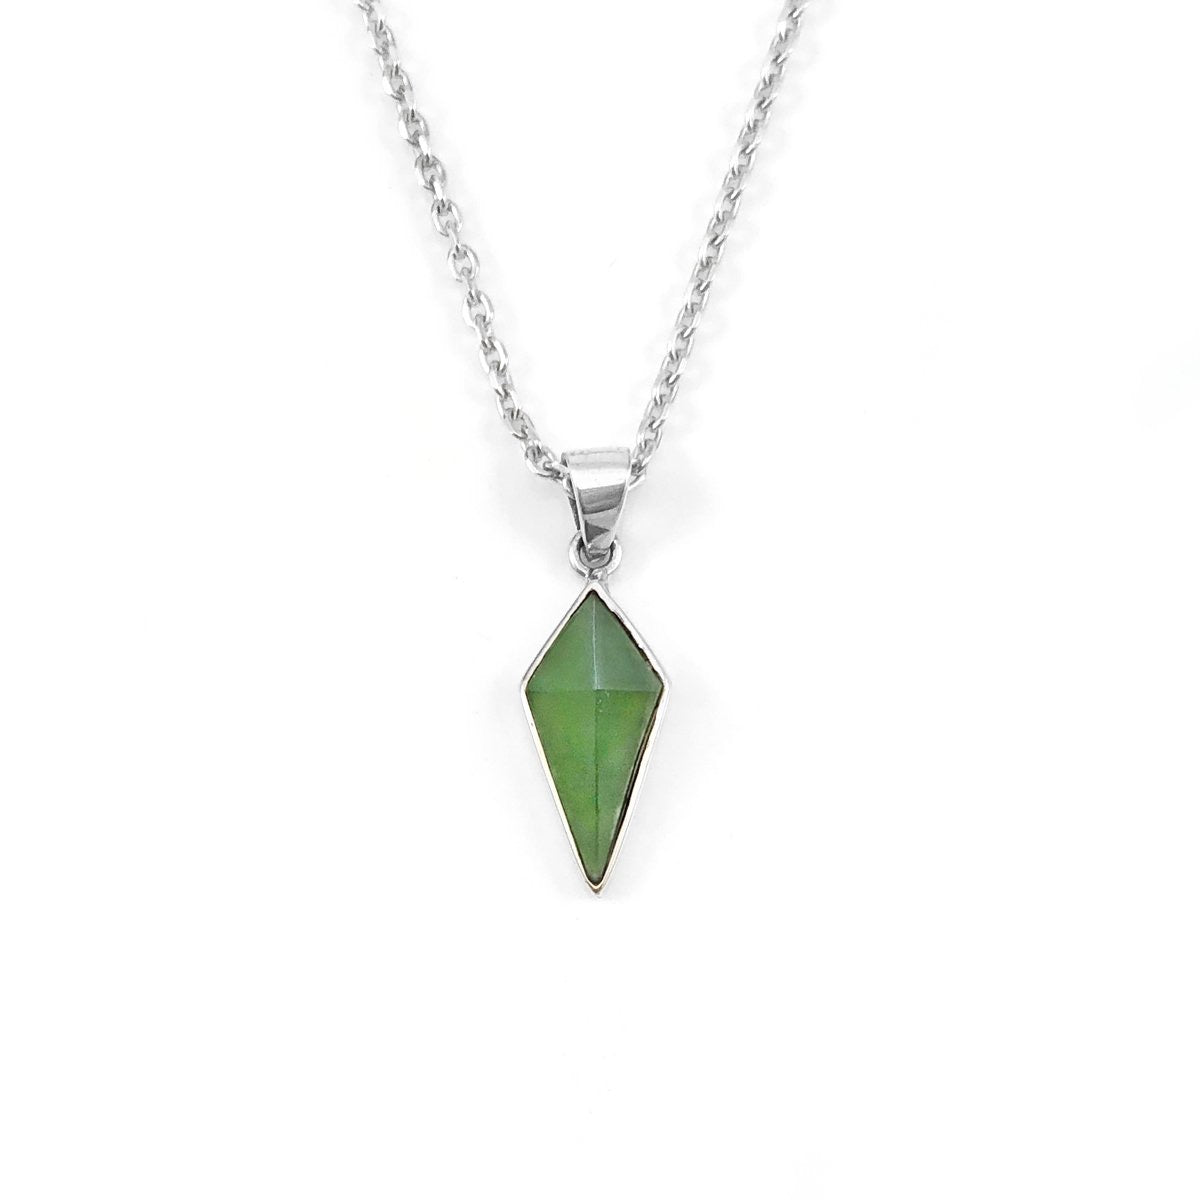 jade kiwi kaikoura gifts pounamu necklace